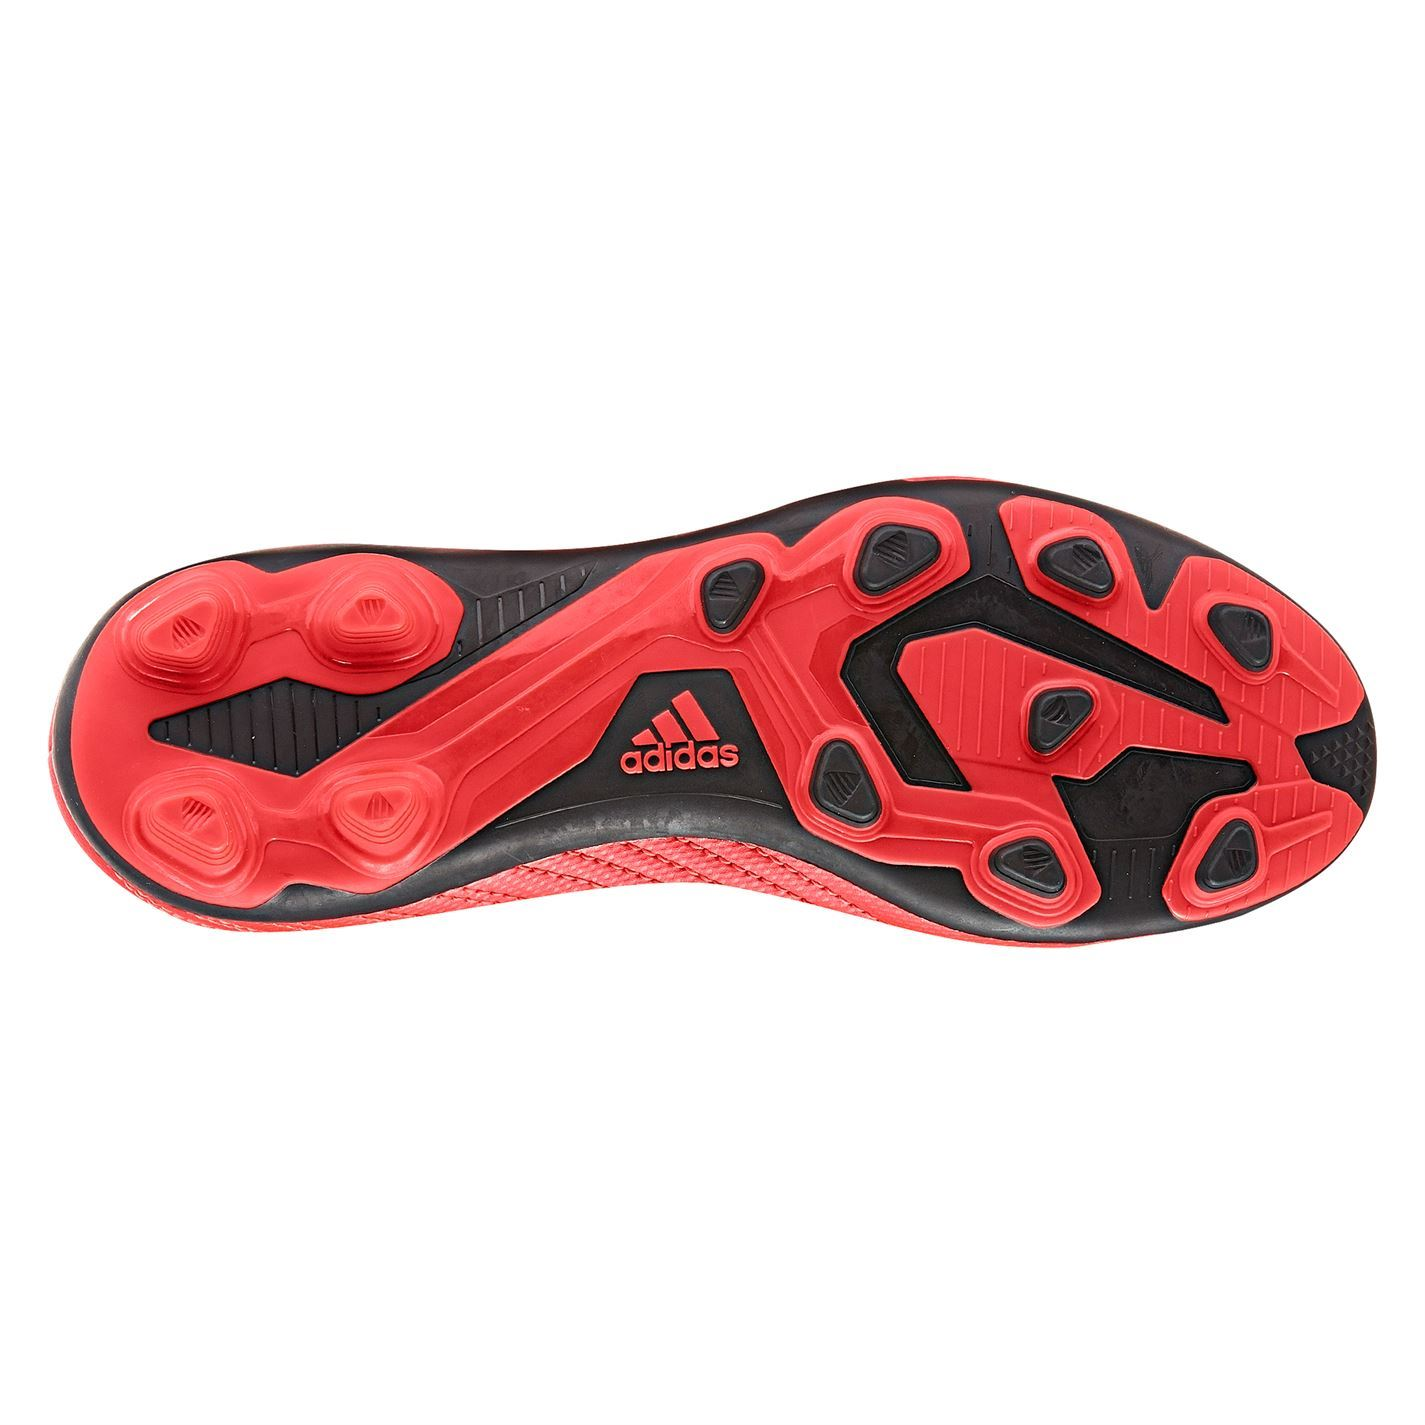 fb4dc55cec4 ... adidas Predator 19.4 FG Firm Ground Football Boots Childs Red Soccer  Cleats ...